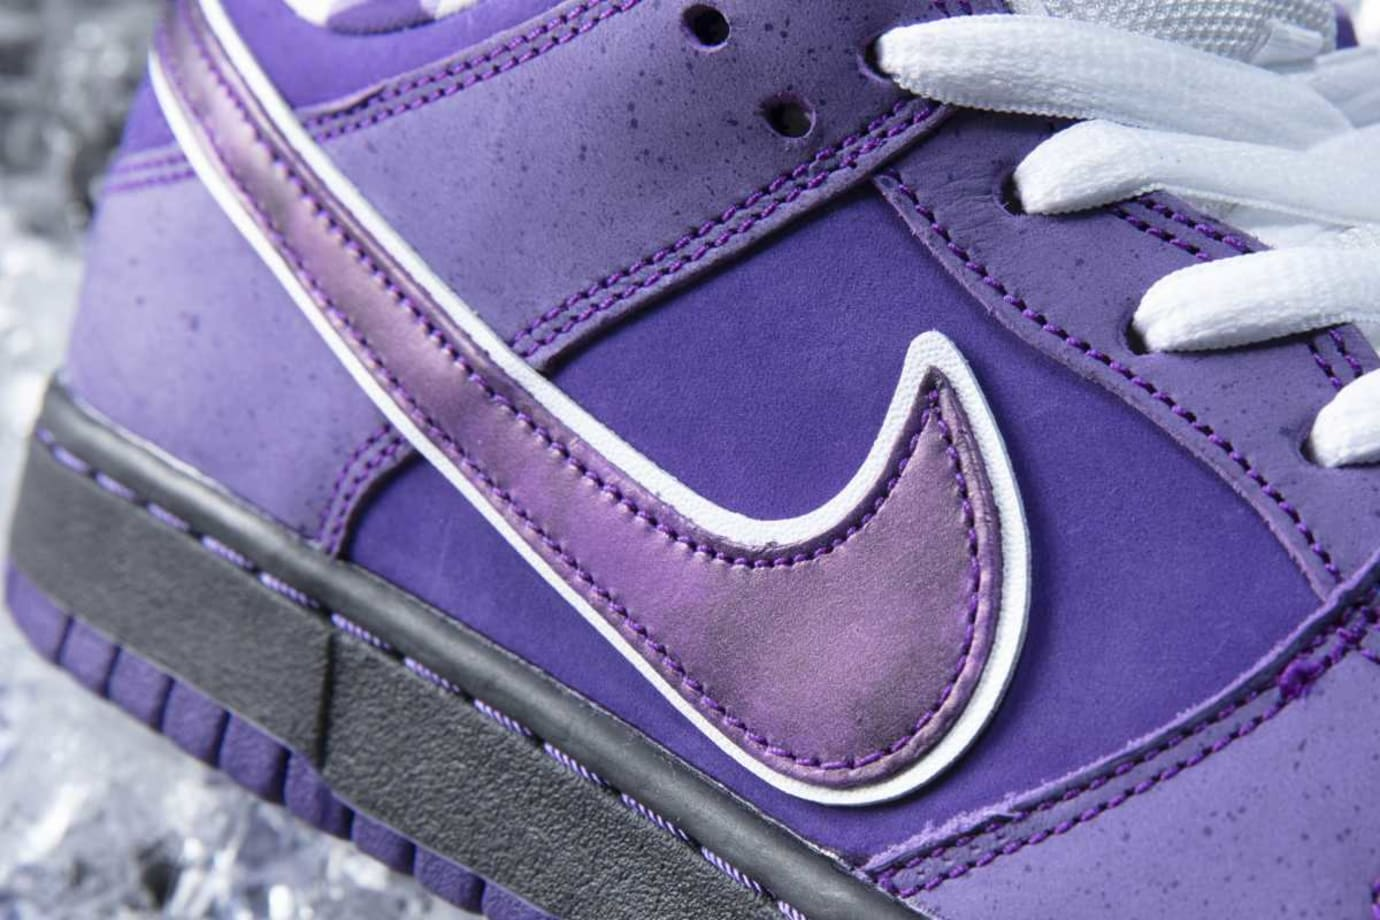 3cbadac81a77 Image via CNCPTS Concepts x Nike SB Dunk Low Purple Lobster Release Date  Swoosh